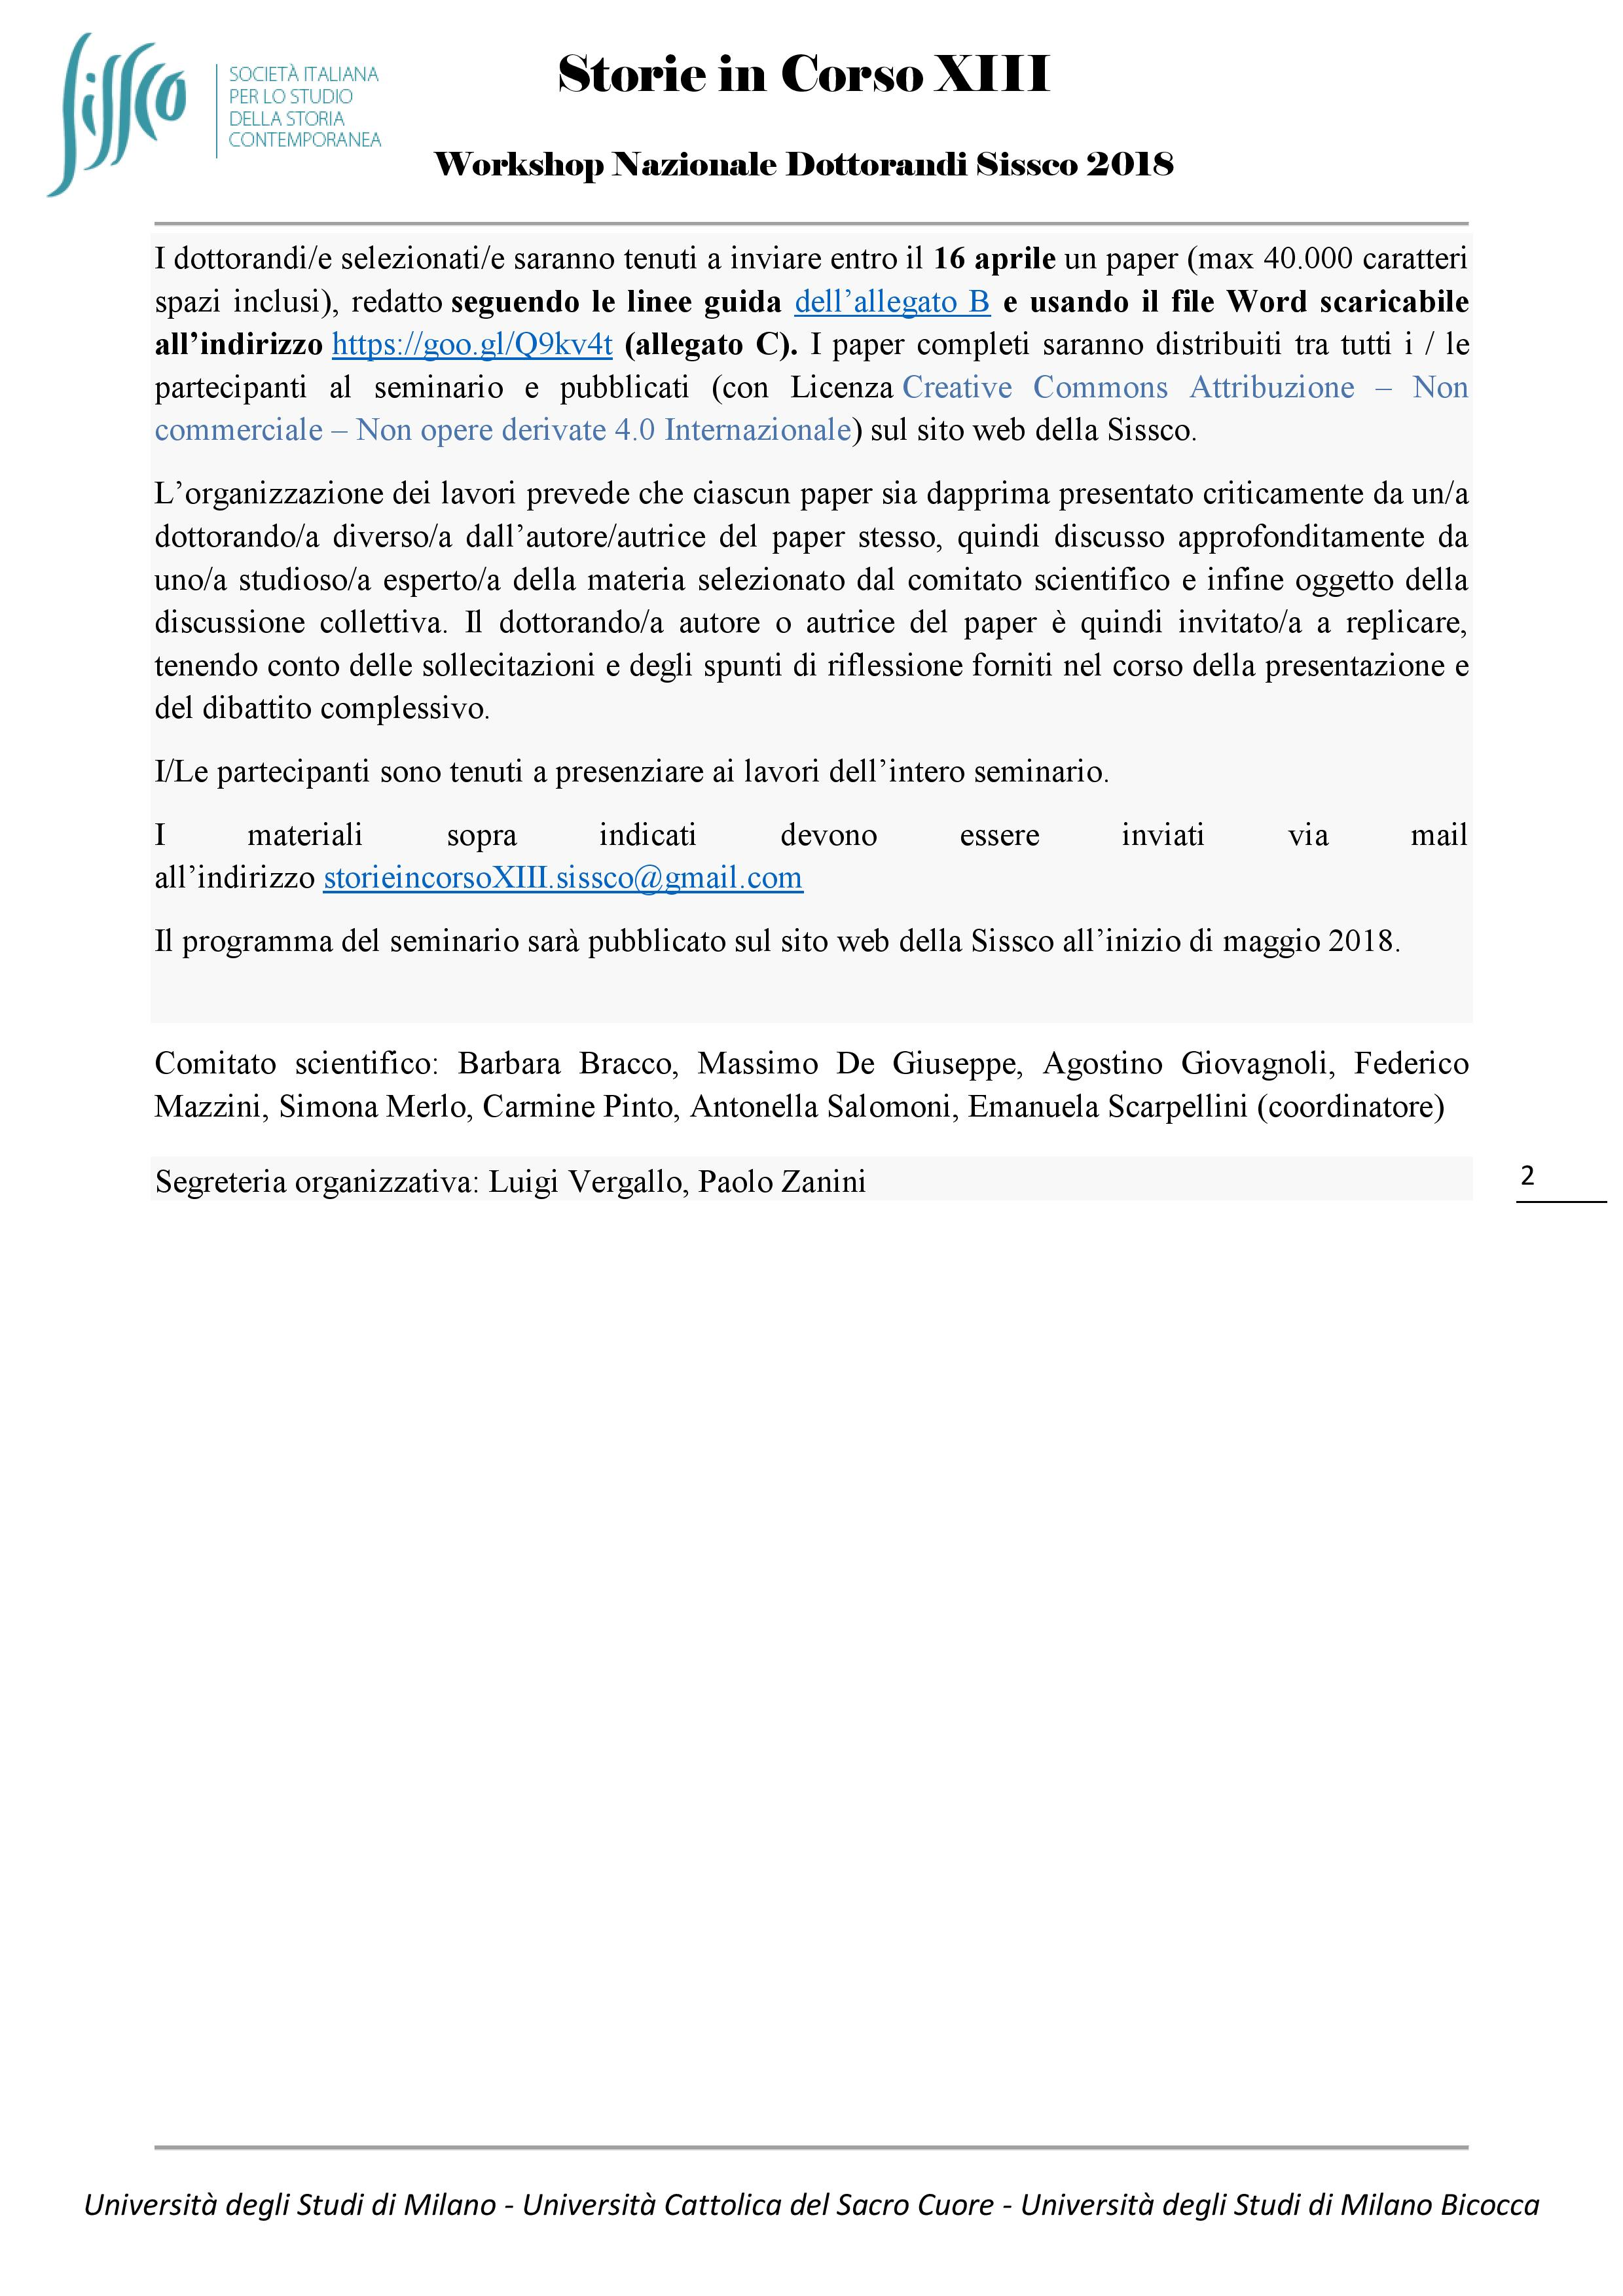 CFP_Storie in corso 2018-page-002